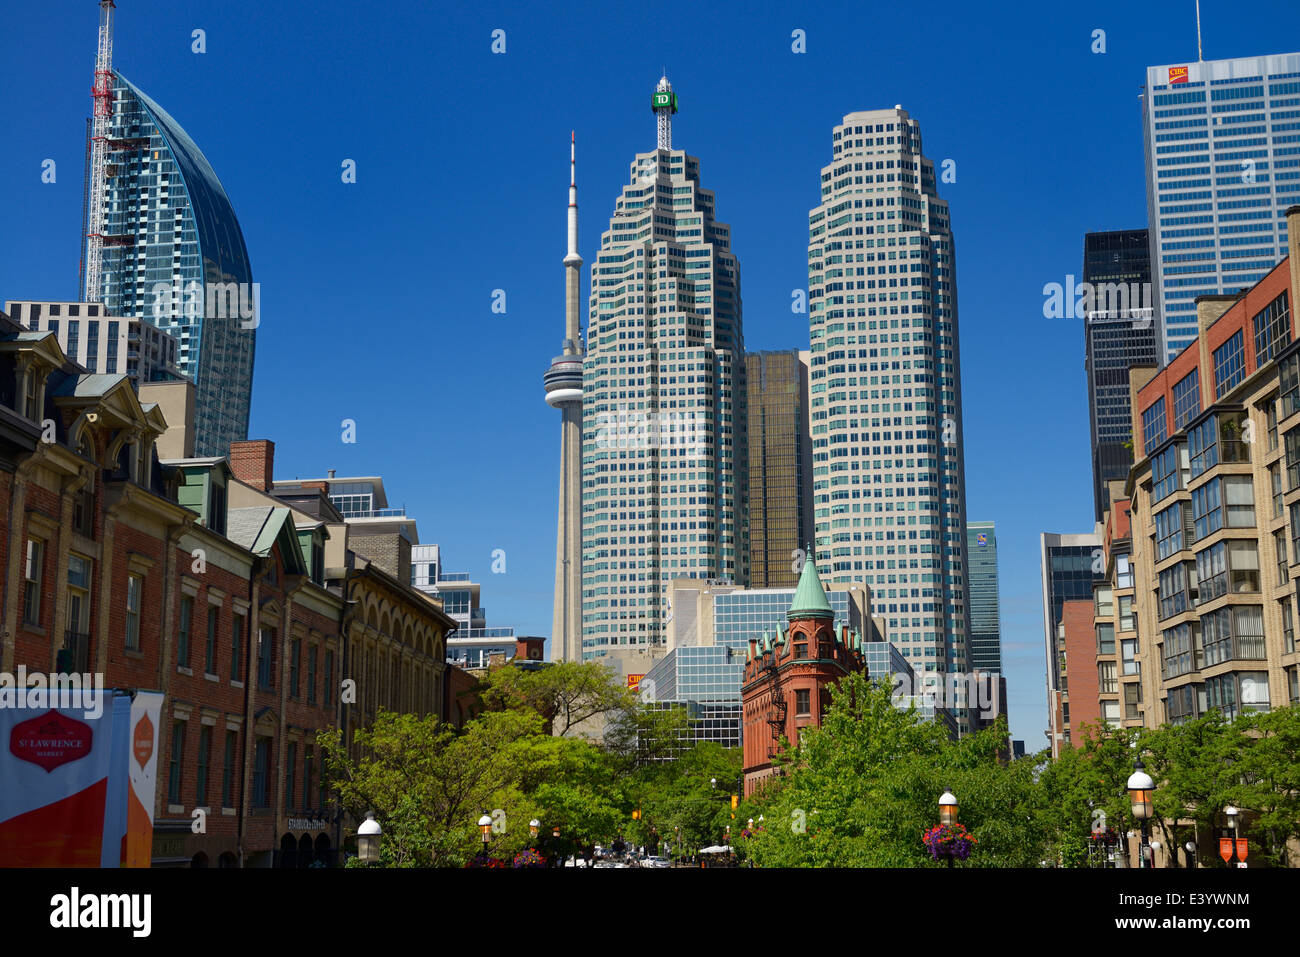 Gooderham Flatiron building with financial district bank towers L tower and CN tower at St Lawrence Market Toronto - Stock Image